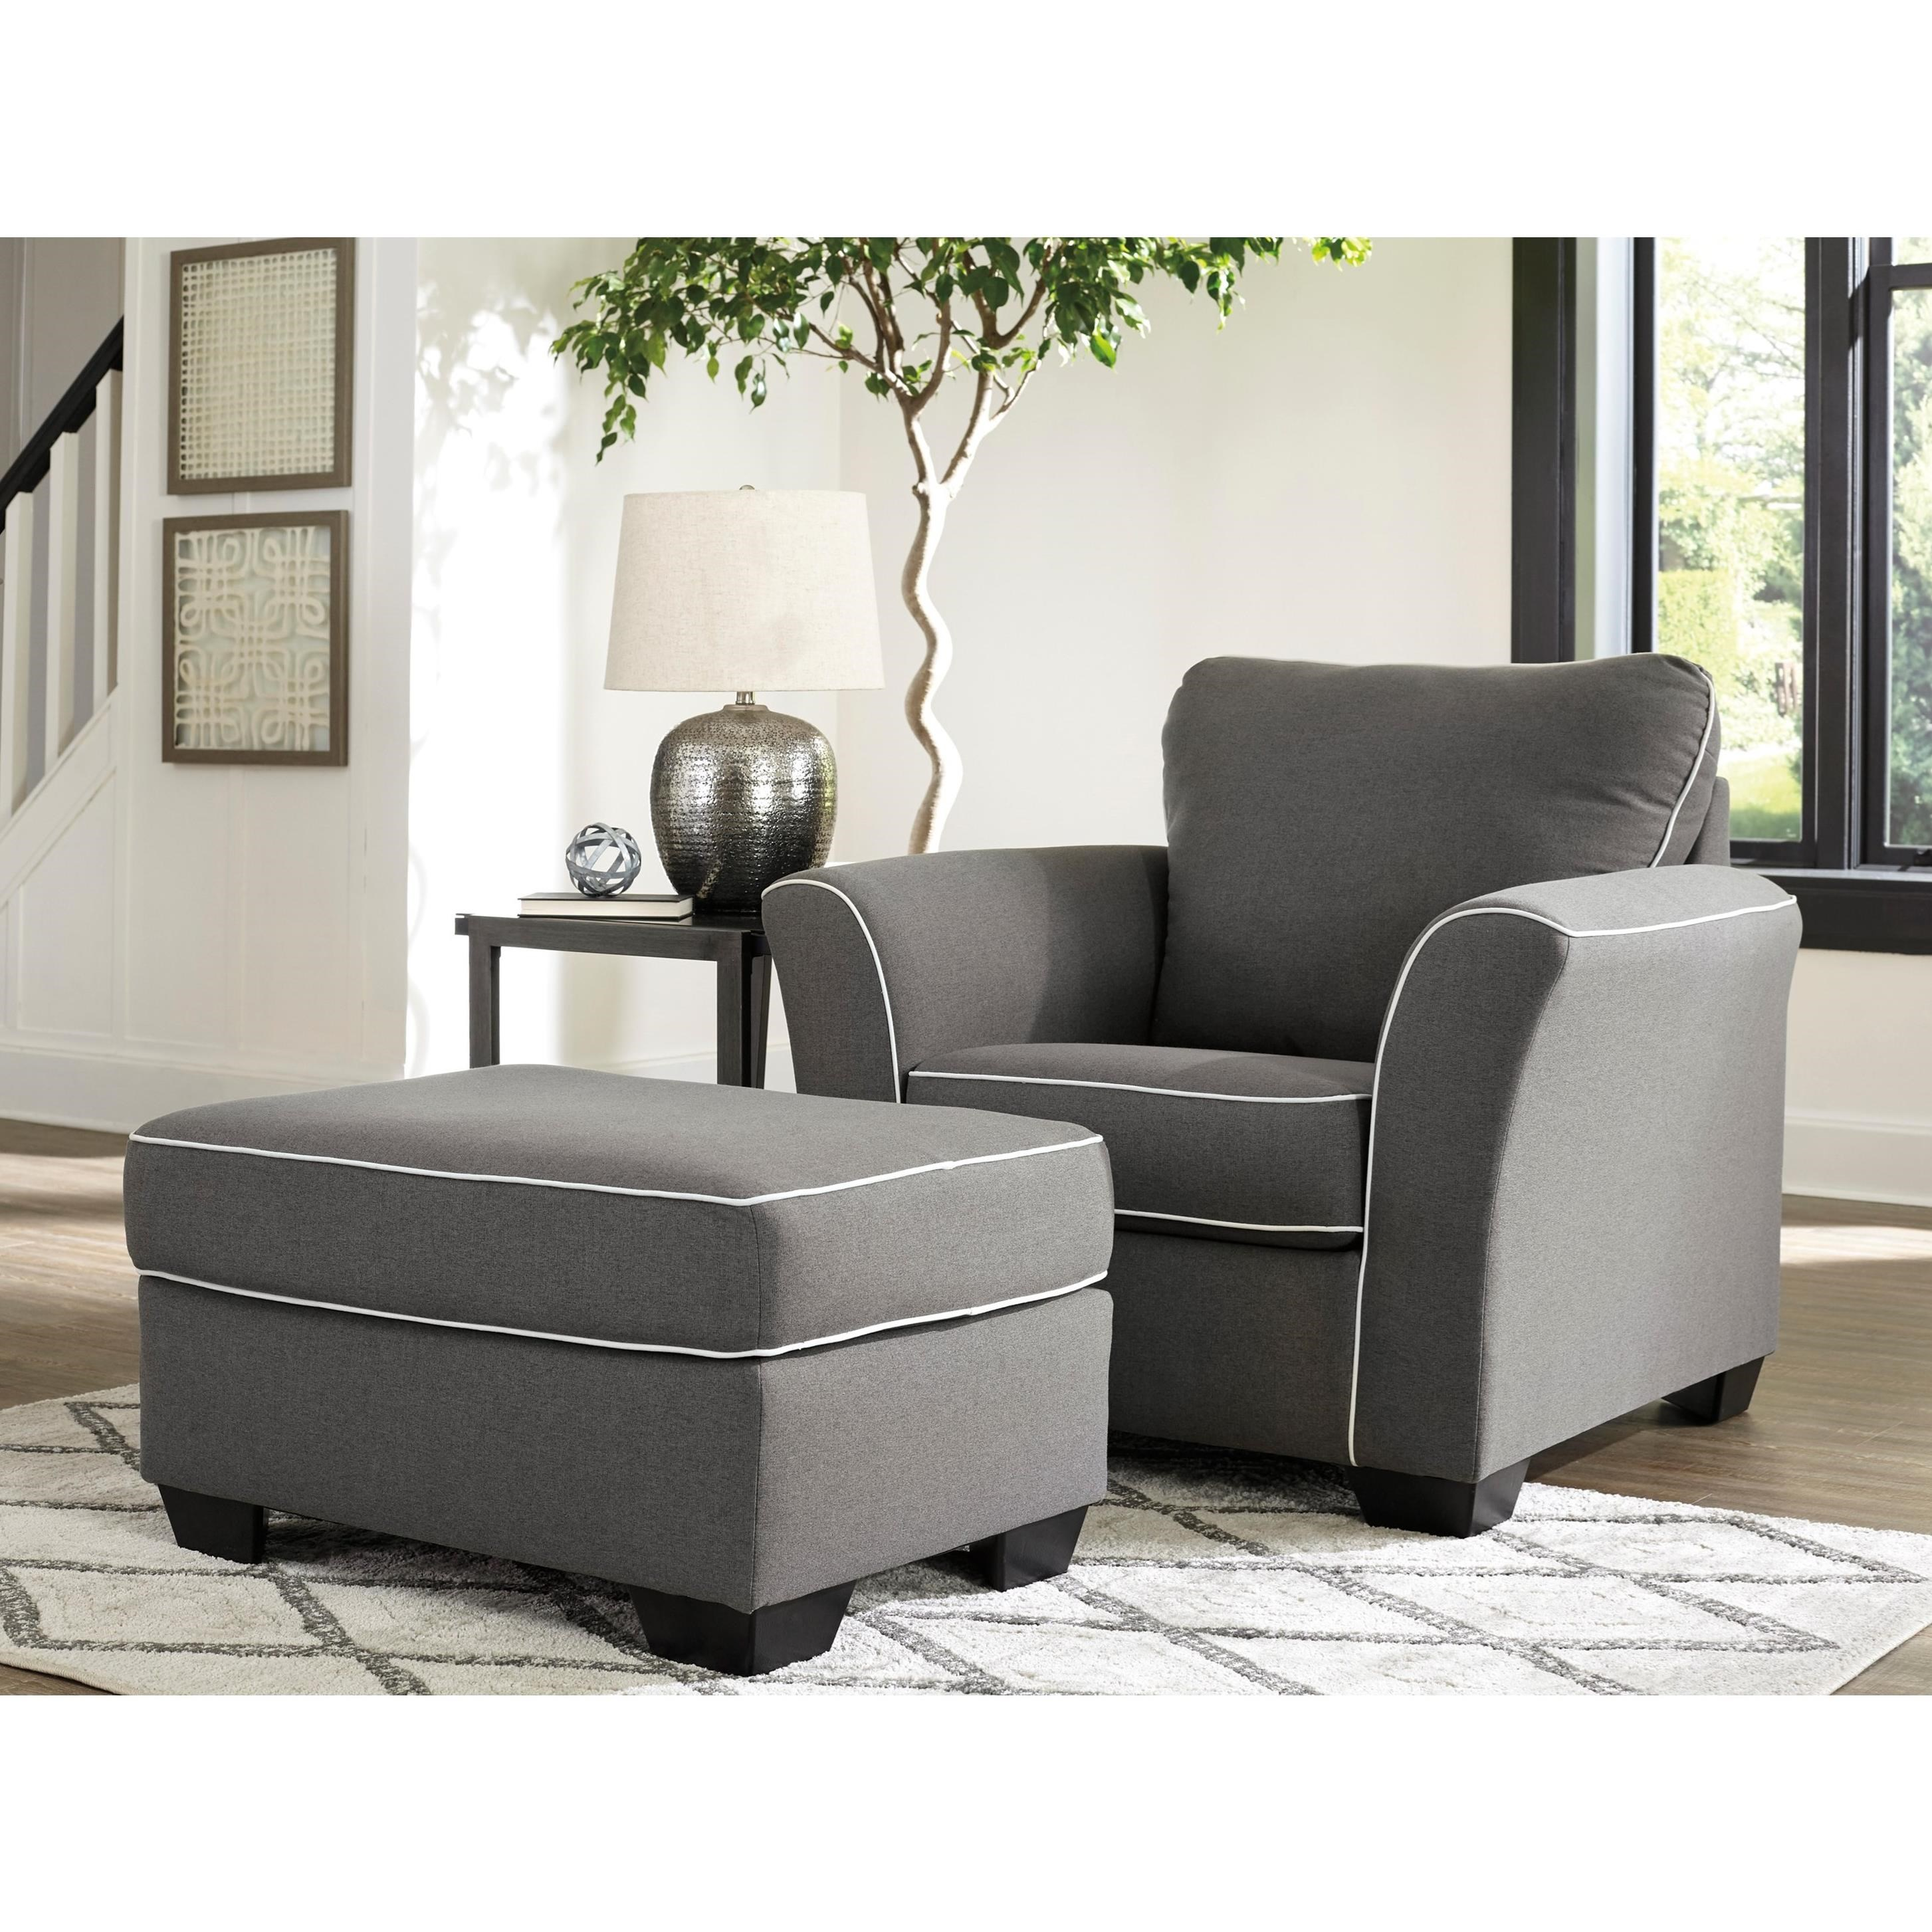 Domani Chair and Ottoman by Signature at Walker's Furniture